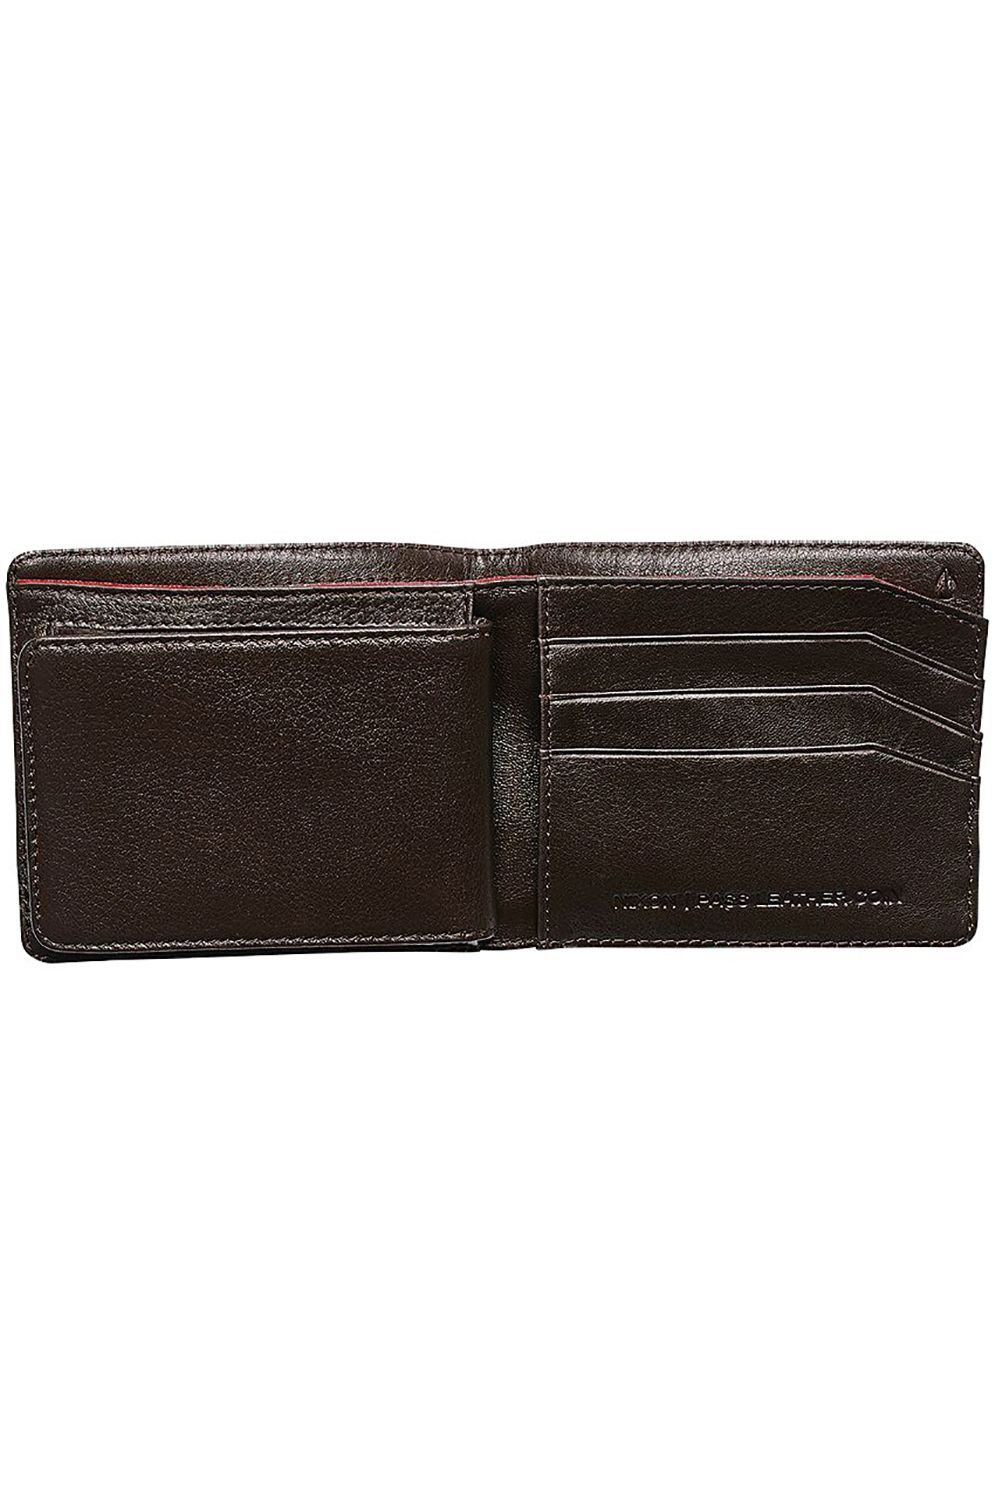 Carteira Pele Nixon PASS LEATHER COIN Brown